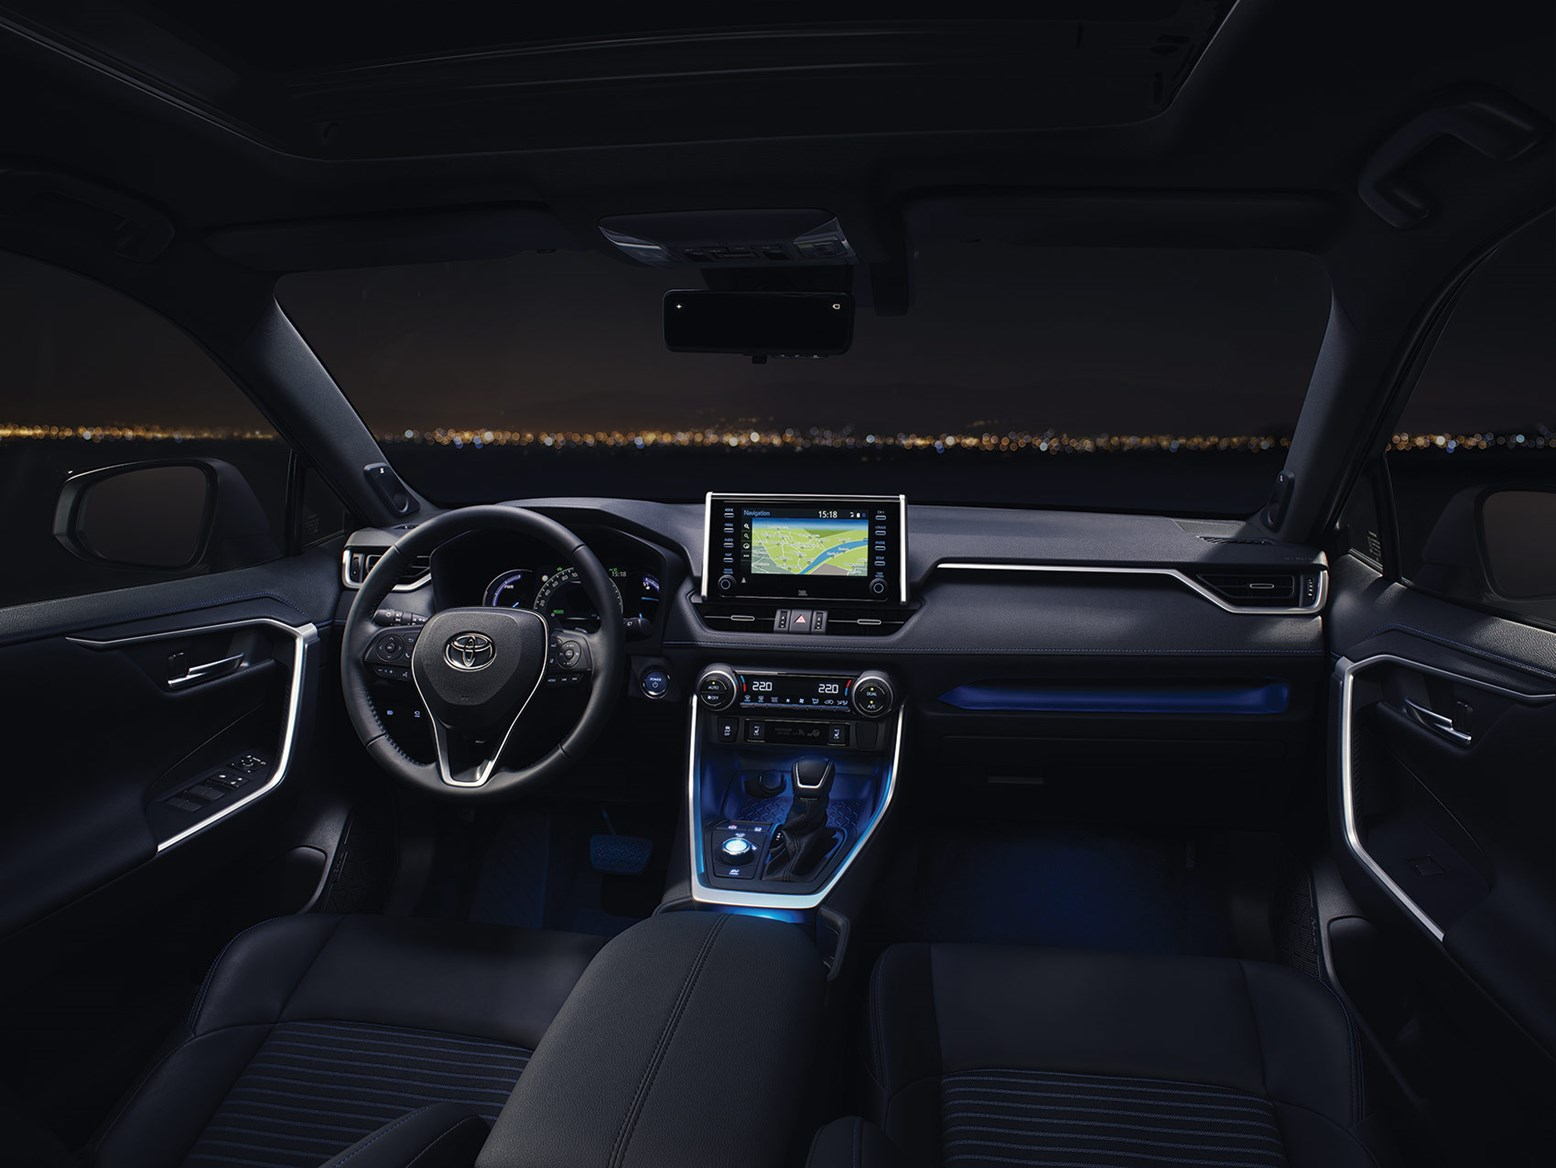 new toyota rav4 plug in hybrid mixes hot hatch pace with prius piety car magazine new toyota rav4 plug in hybrid mixes